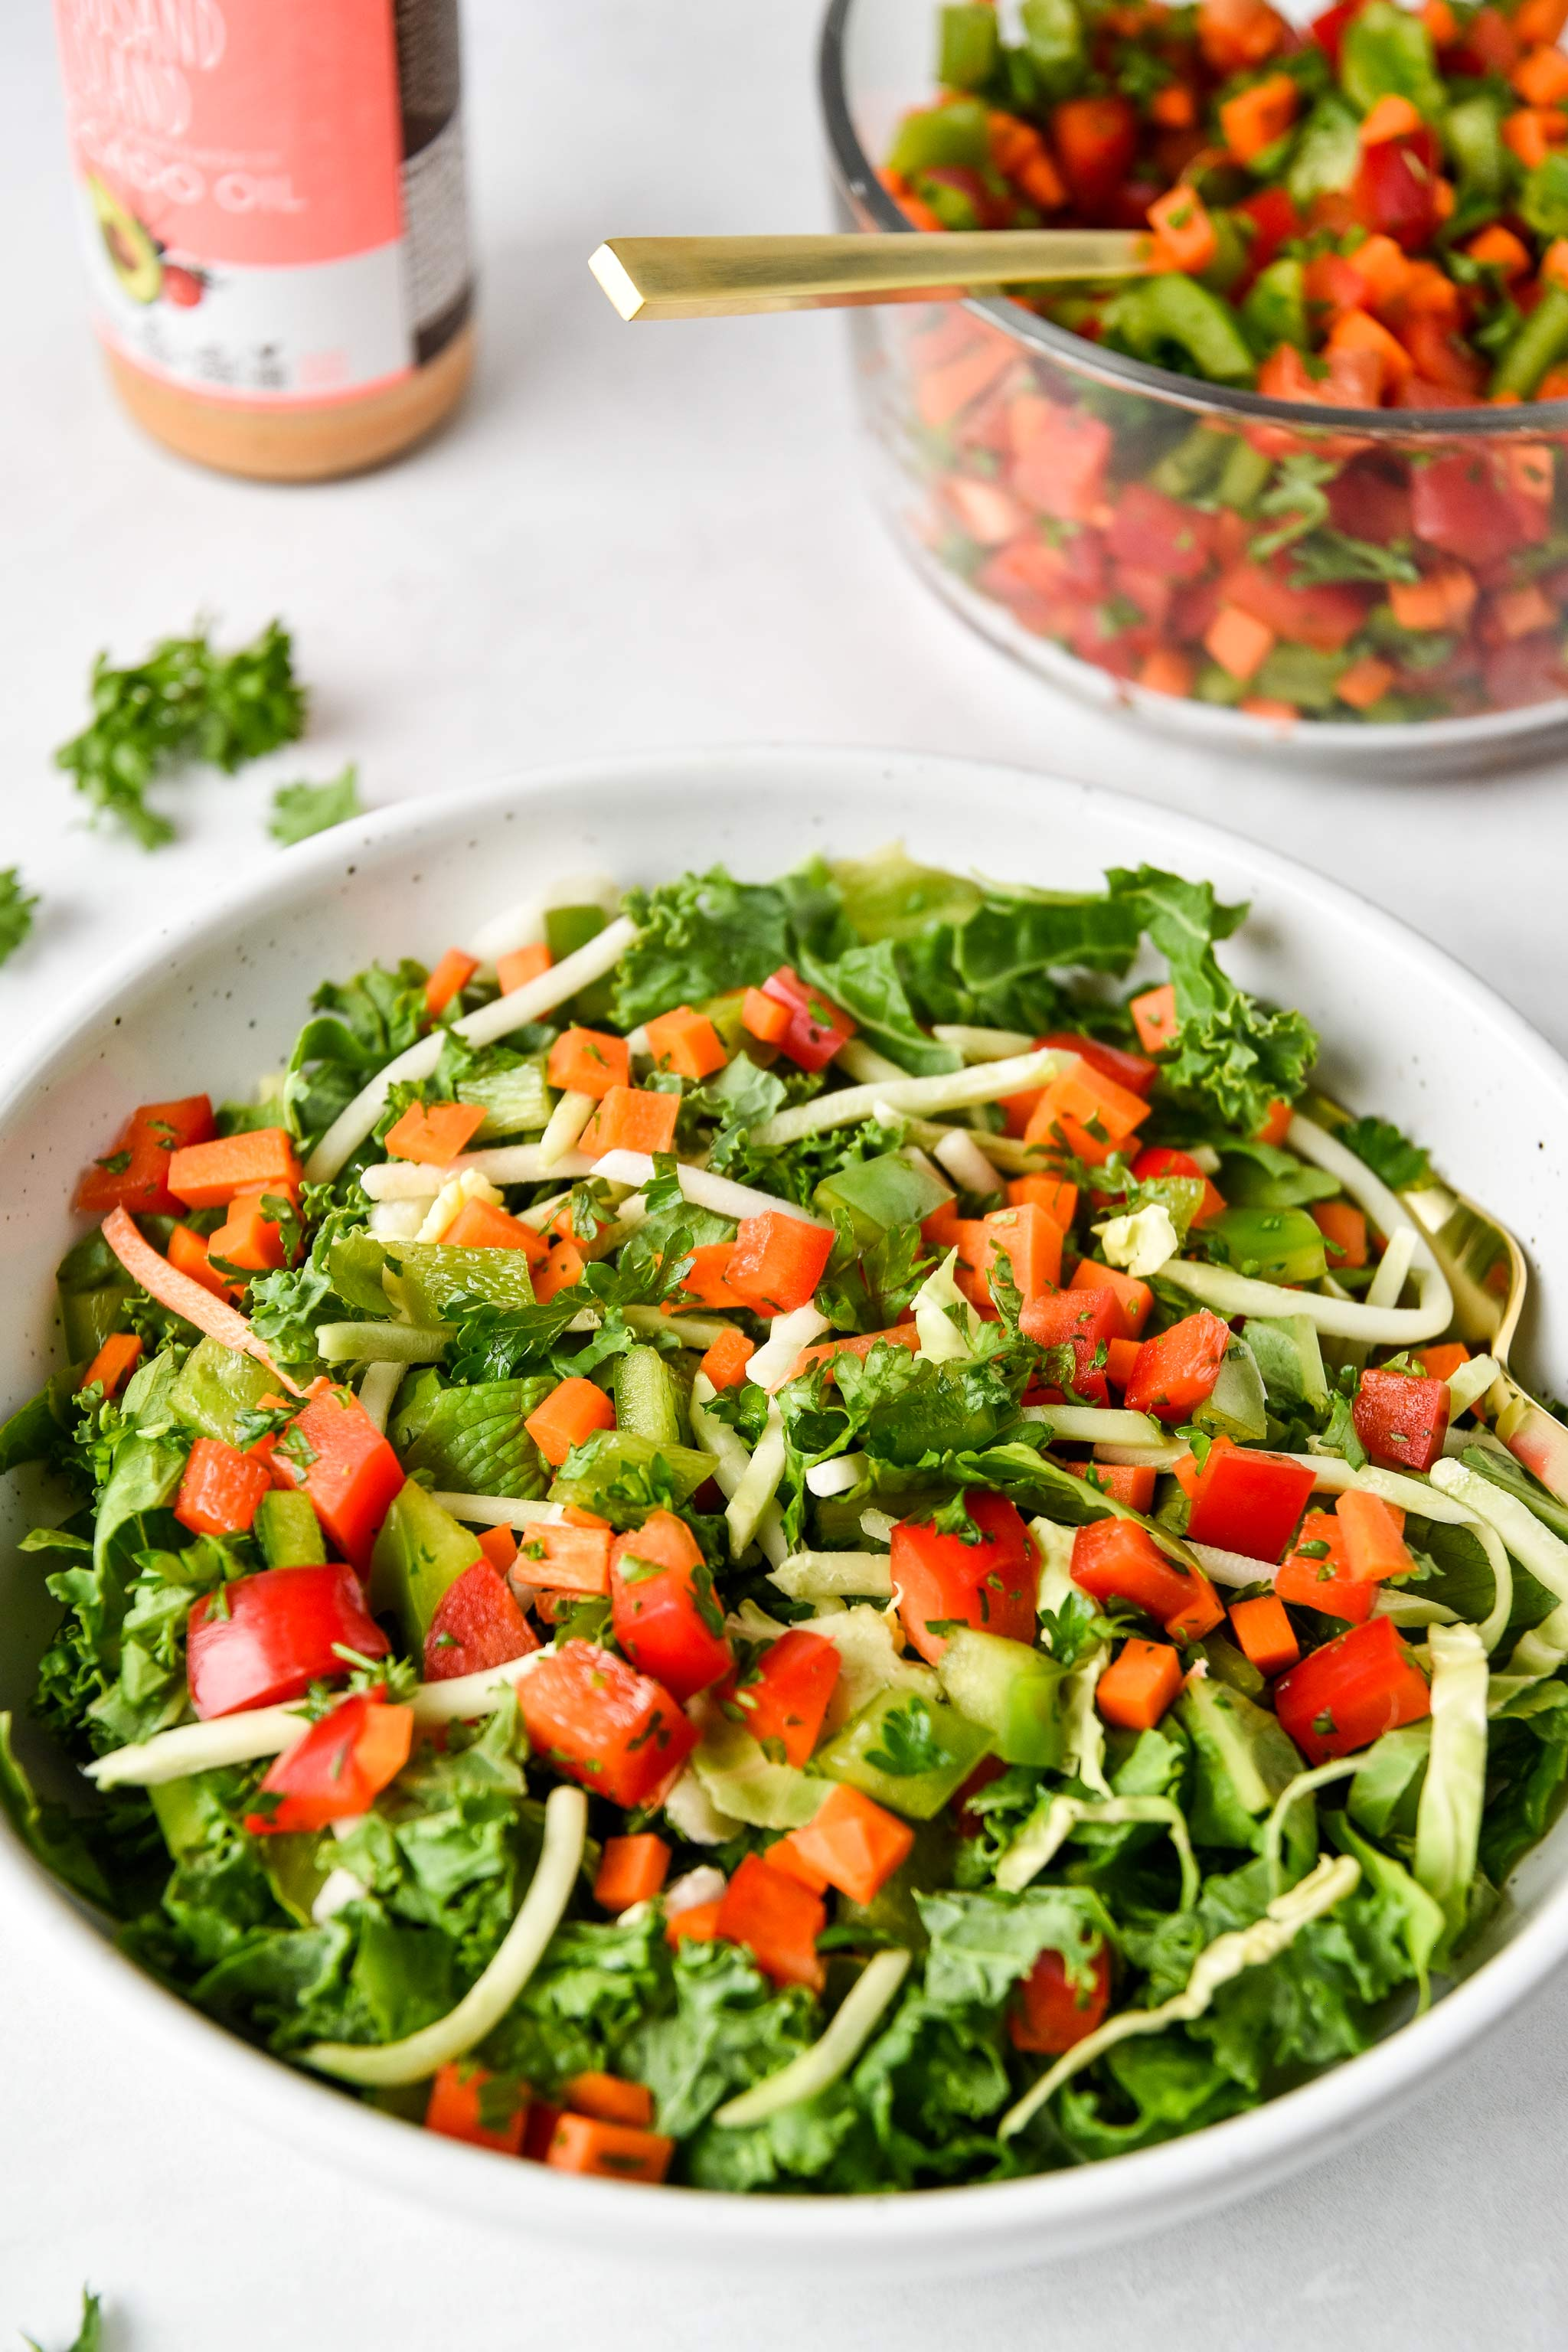 a green salad with vegetable confetti